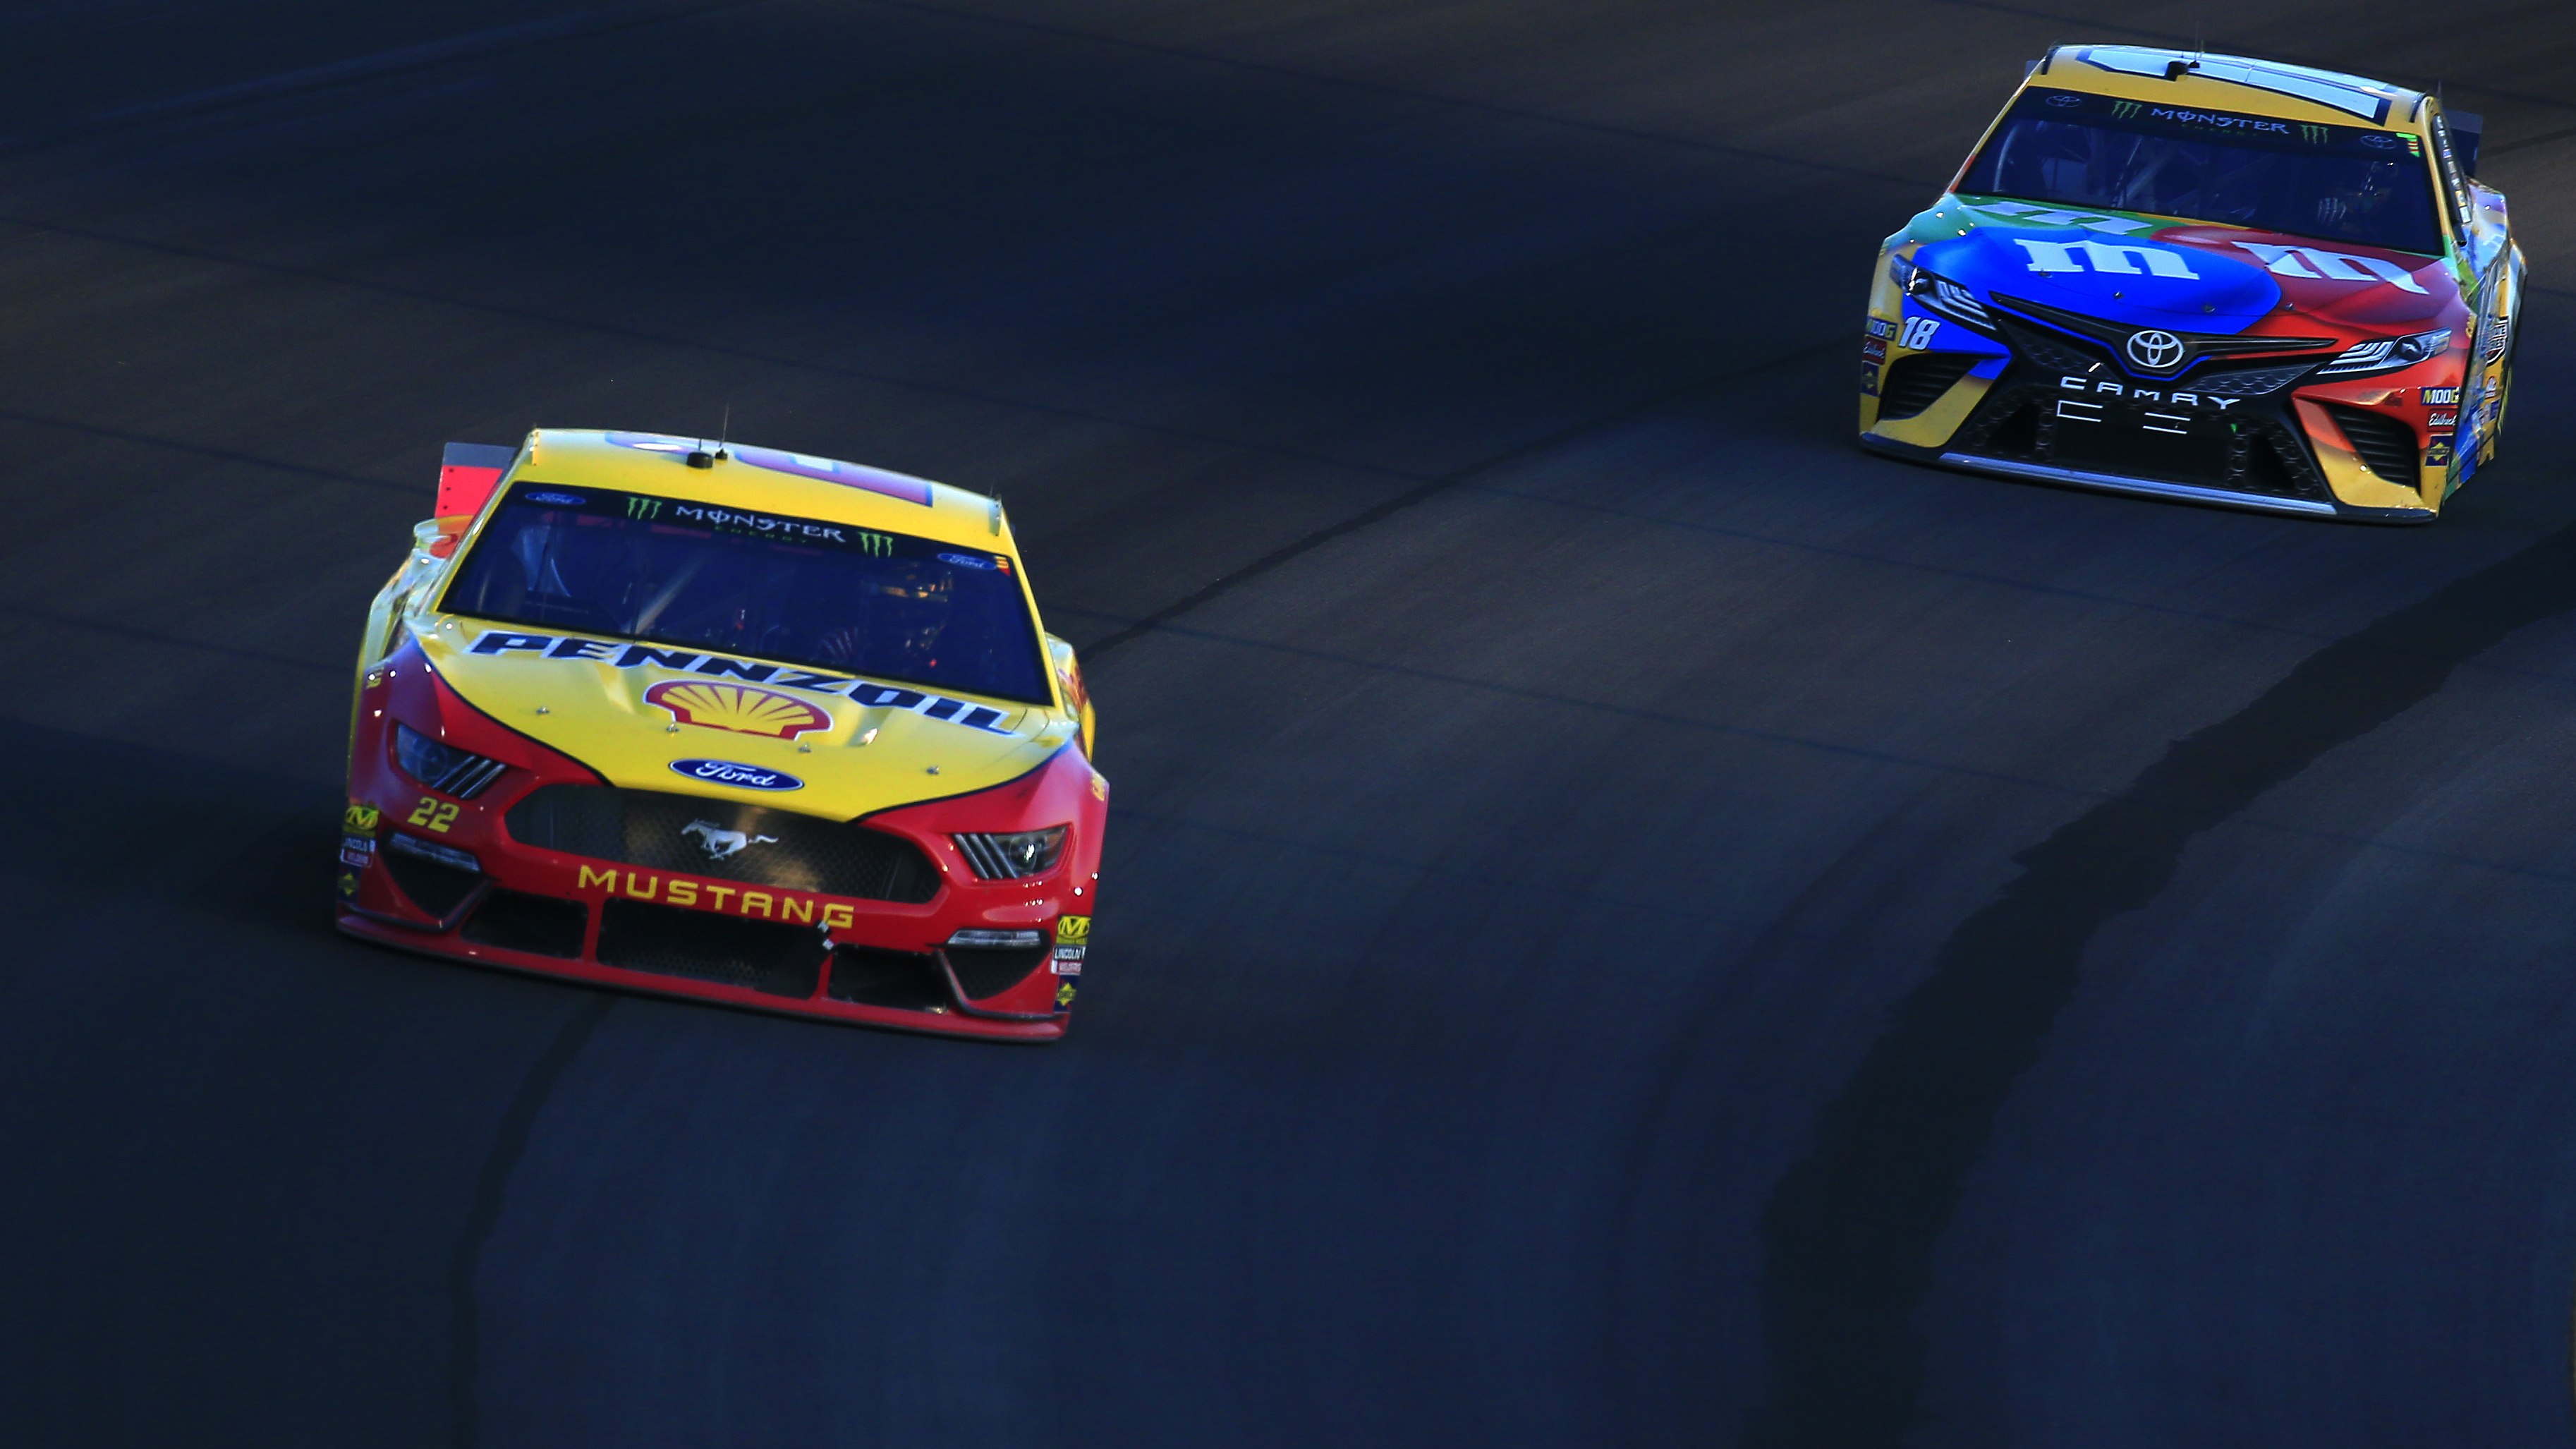 Kyle Busch and Joey Logano battle for position in final laps at